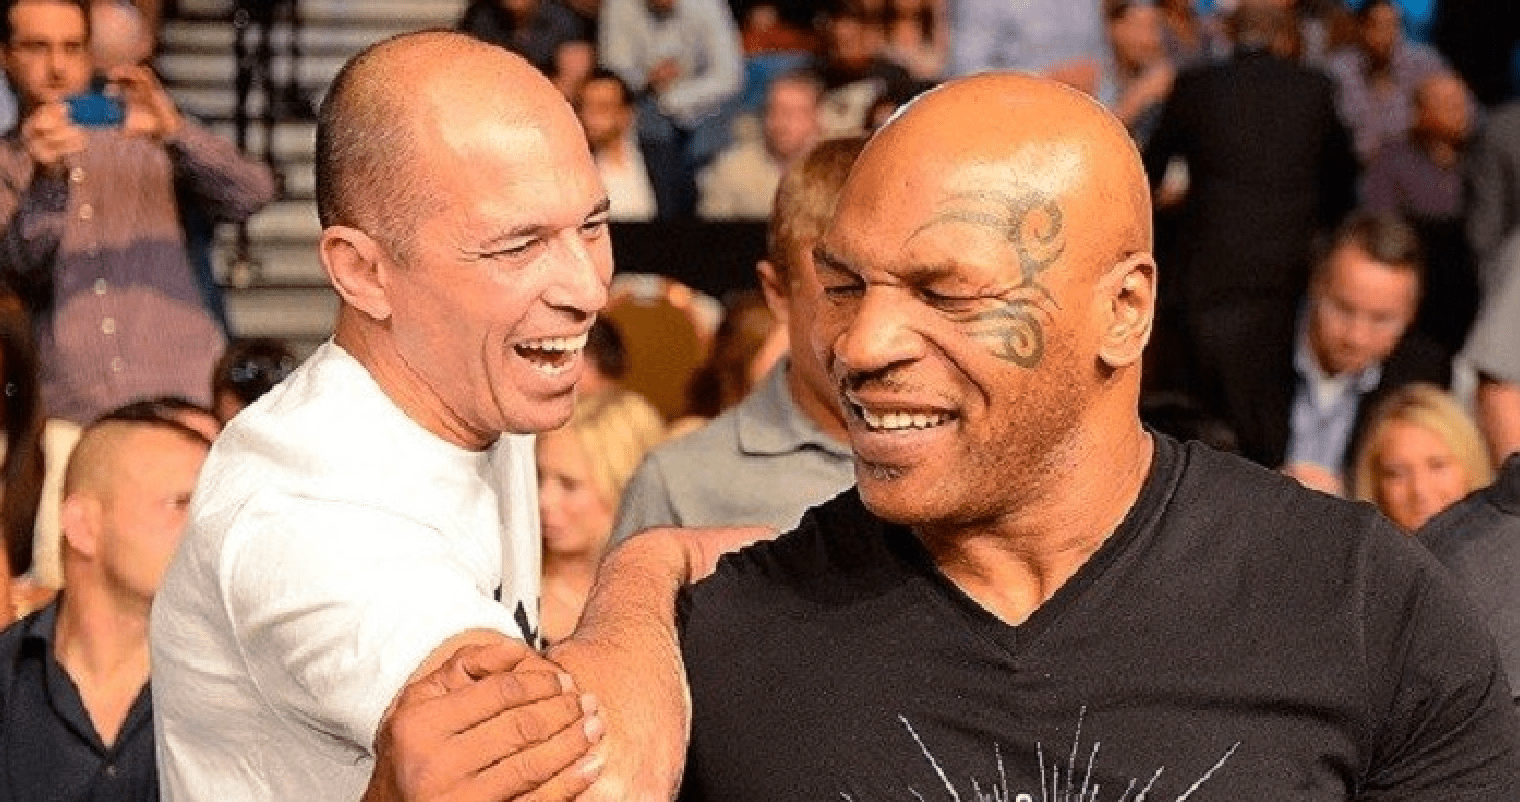 UFC: How Would Mike Tyson vs Royce Gracie Have Gone In The 90's?